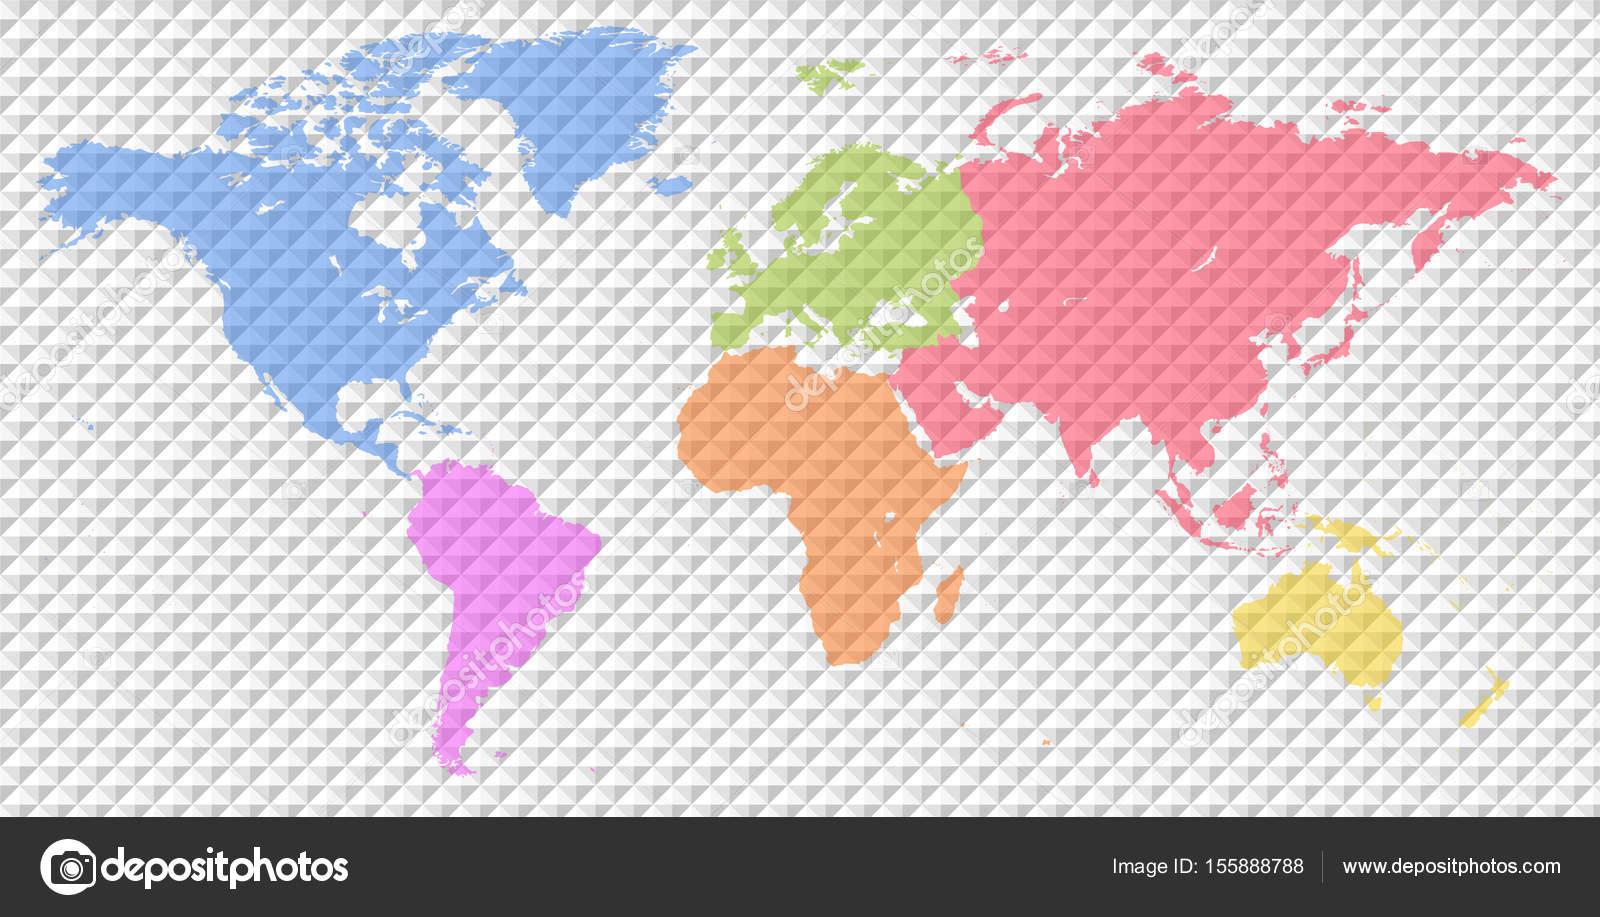 Vector intertwined with pyramid pattern texture bound pattern vector intertwined with pyramid pattern texture bound pattern similar background colorful worldmap blank template wonderful beautiful world map gumiabroncs Gallery